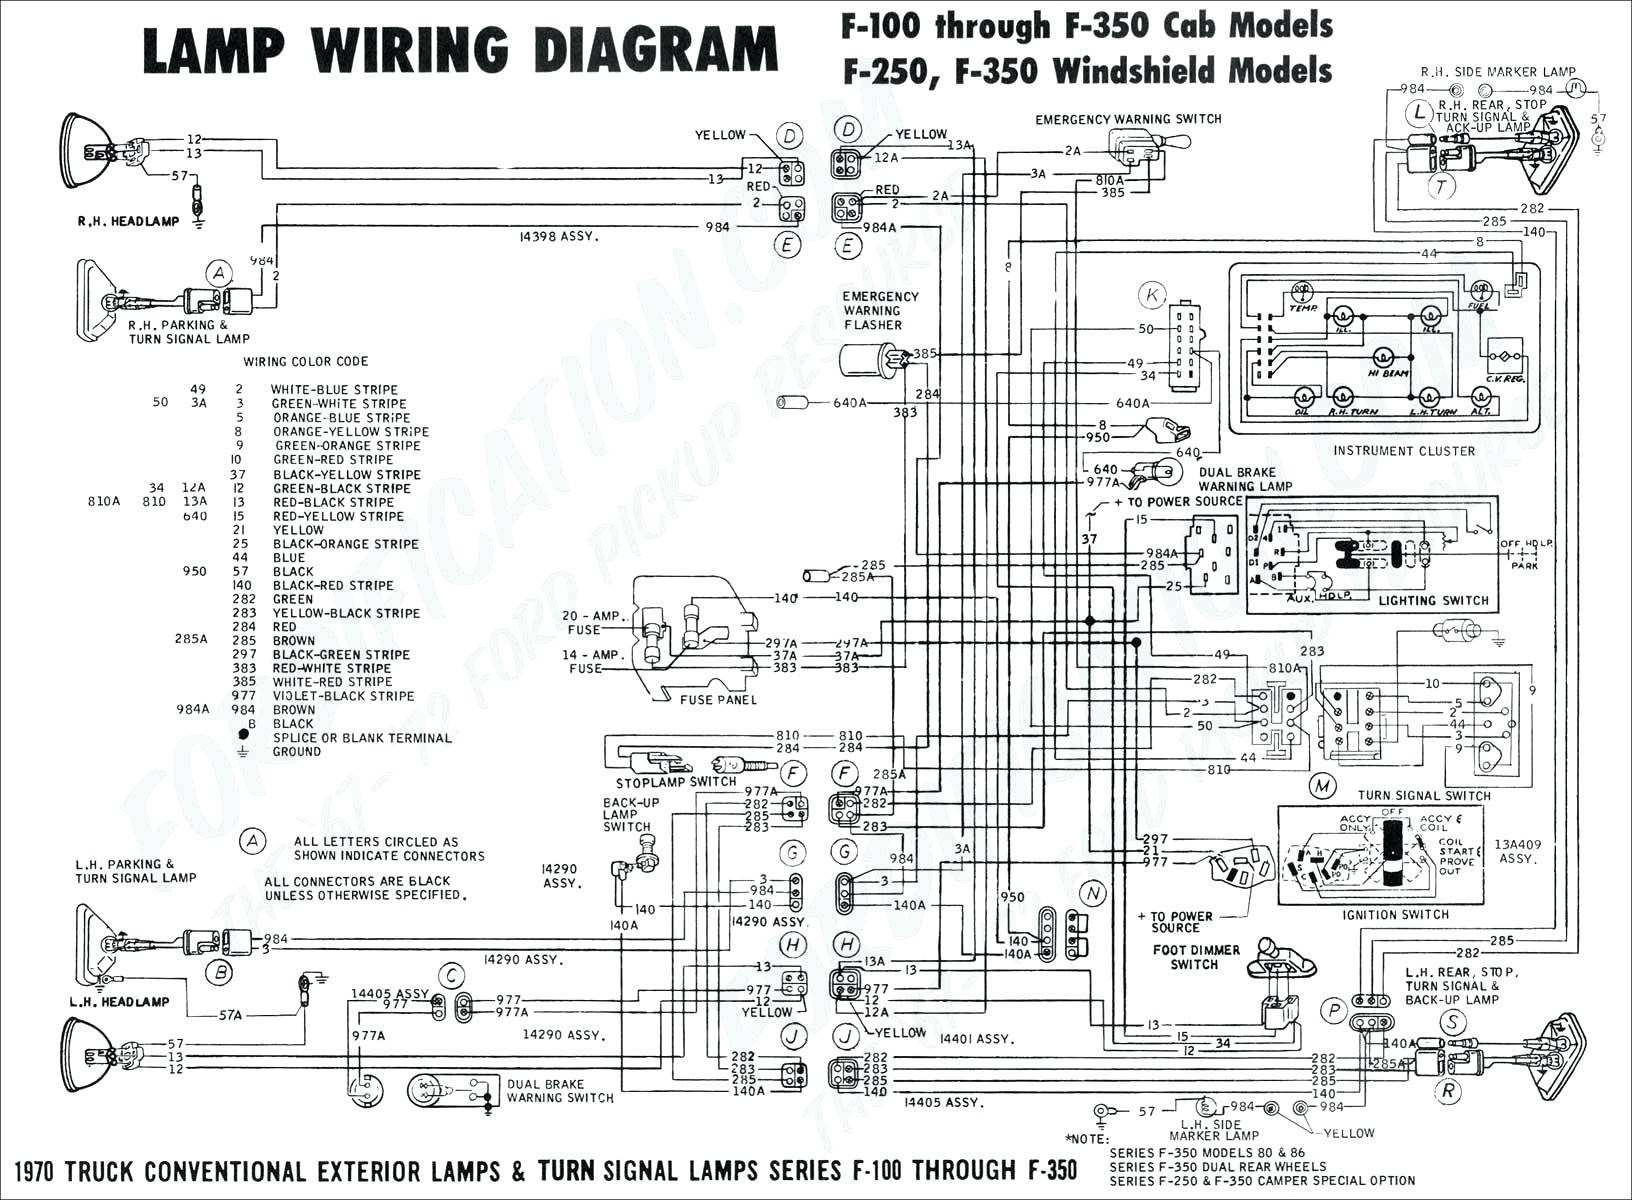 dodge ram 1500 trailer wiring diagram Collection-1995 Dodge Ram 1500 Trailer Wiring Diagram Fresh 2001 Dodge Ram Wiring Diagram Trailer New Semi 12-n